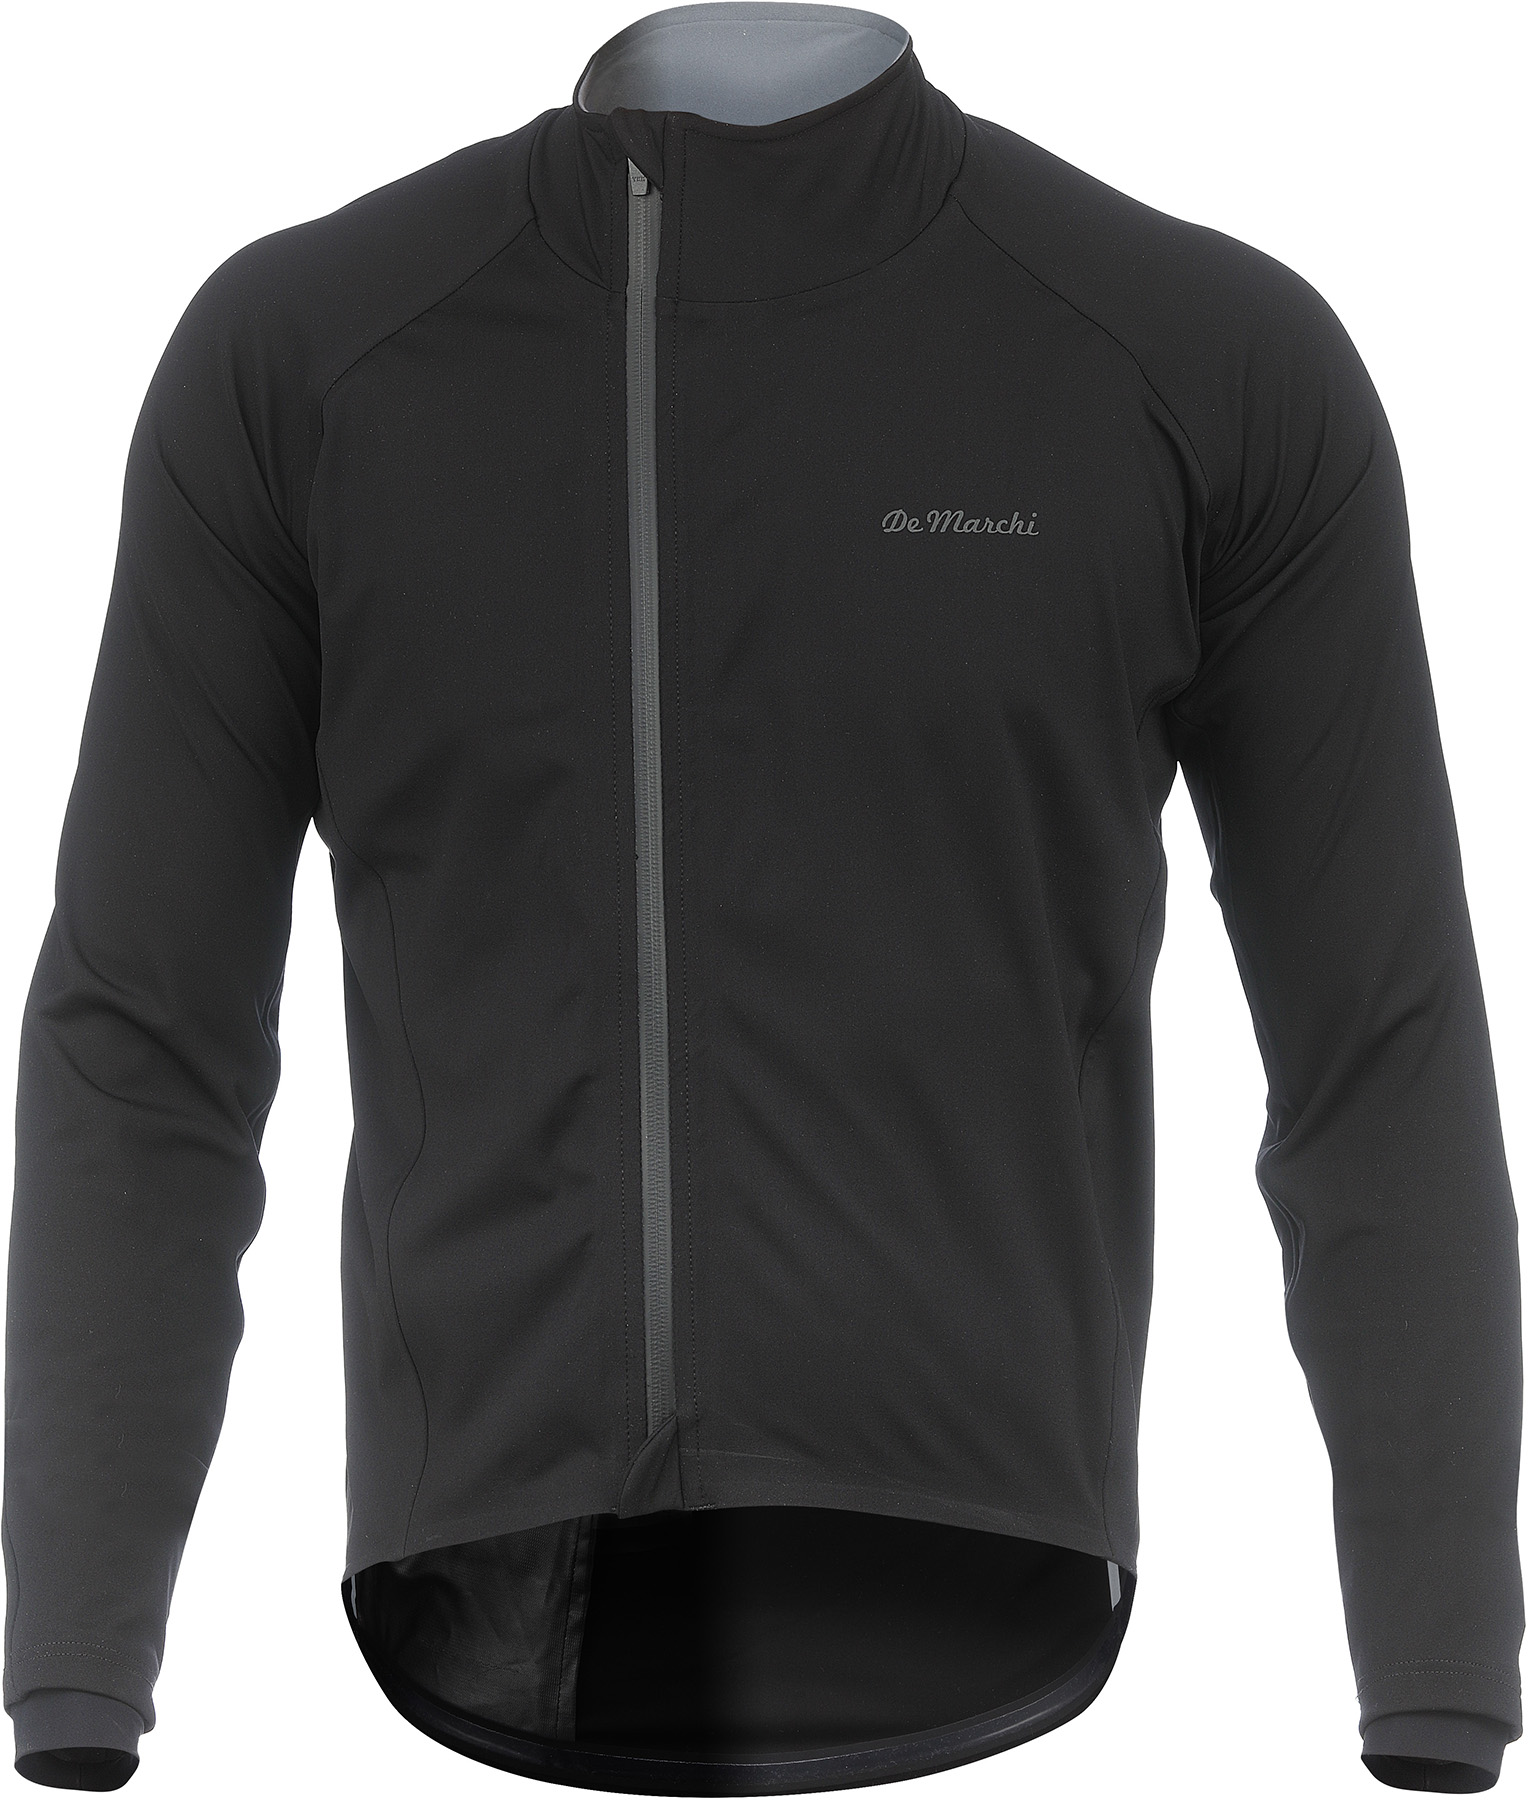 De Marchi Stelvio Waterproof Jacket | Jackets